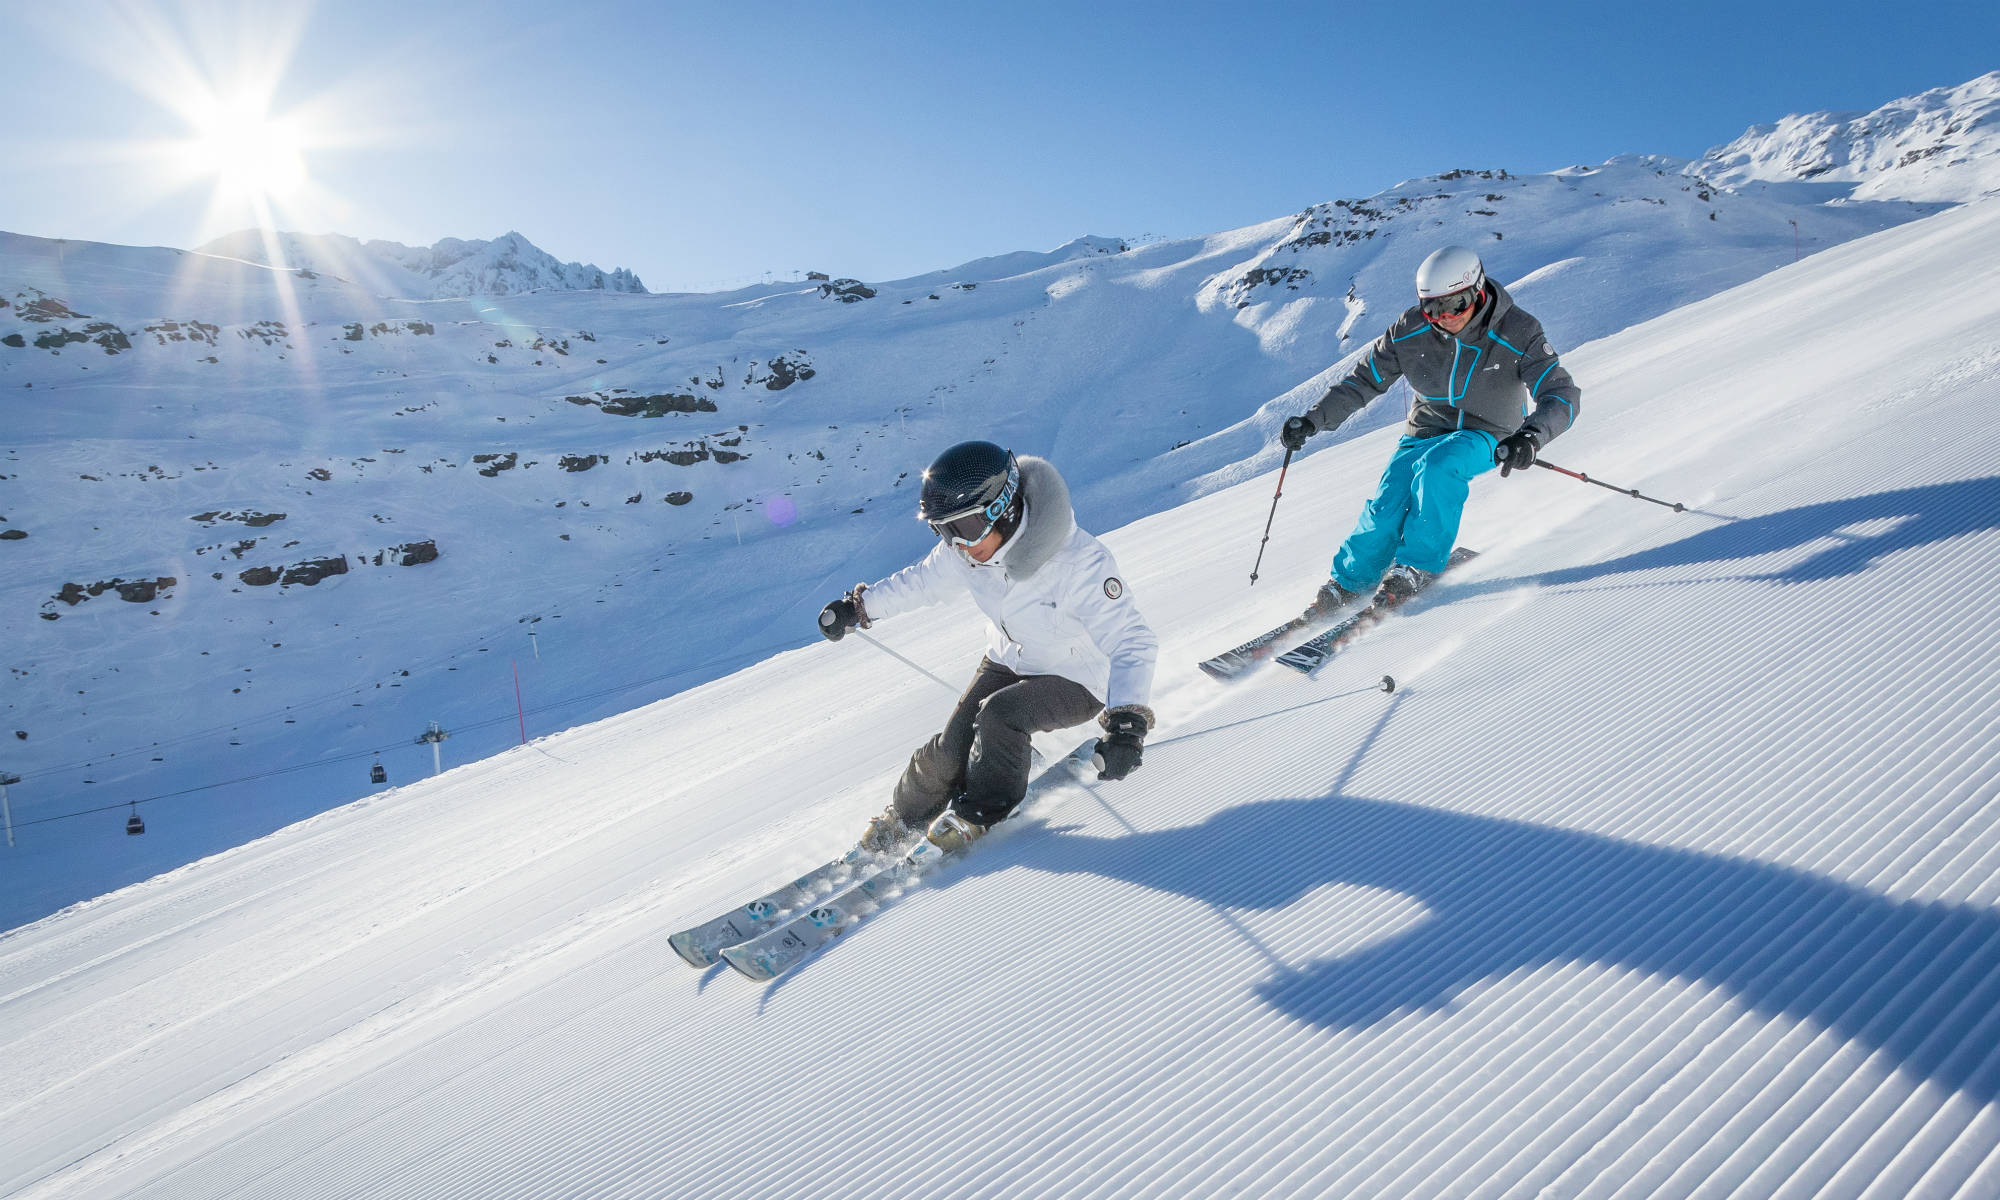 Two skiers are skiing on a freshly groomed piste in front of the mountain panorama of Val Thorens.